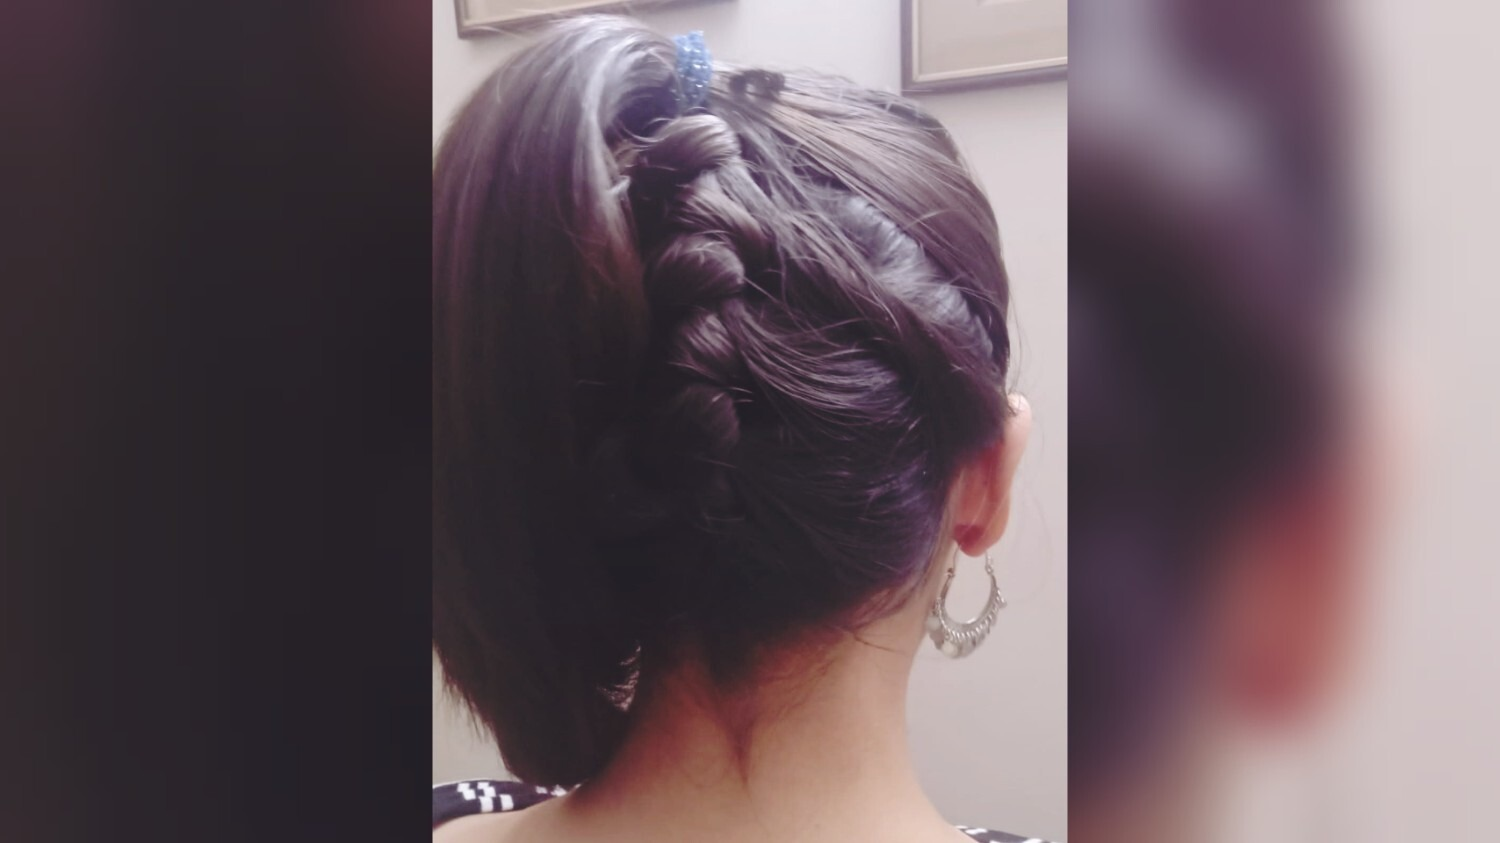 We tried the Dutch braid and this is what it looked like